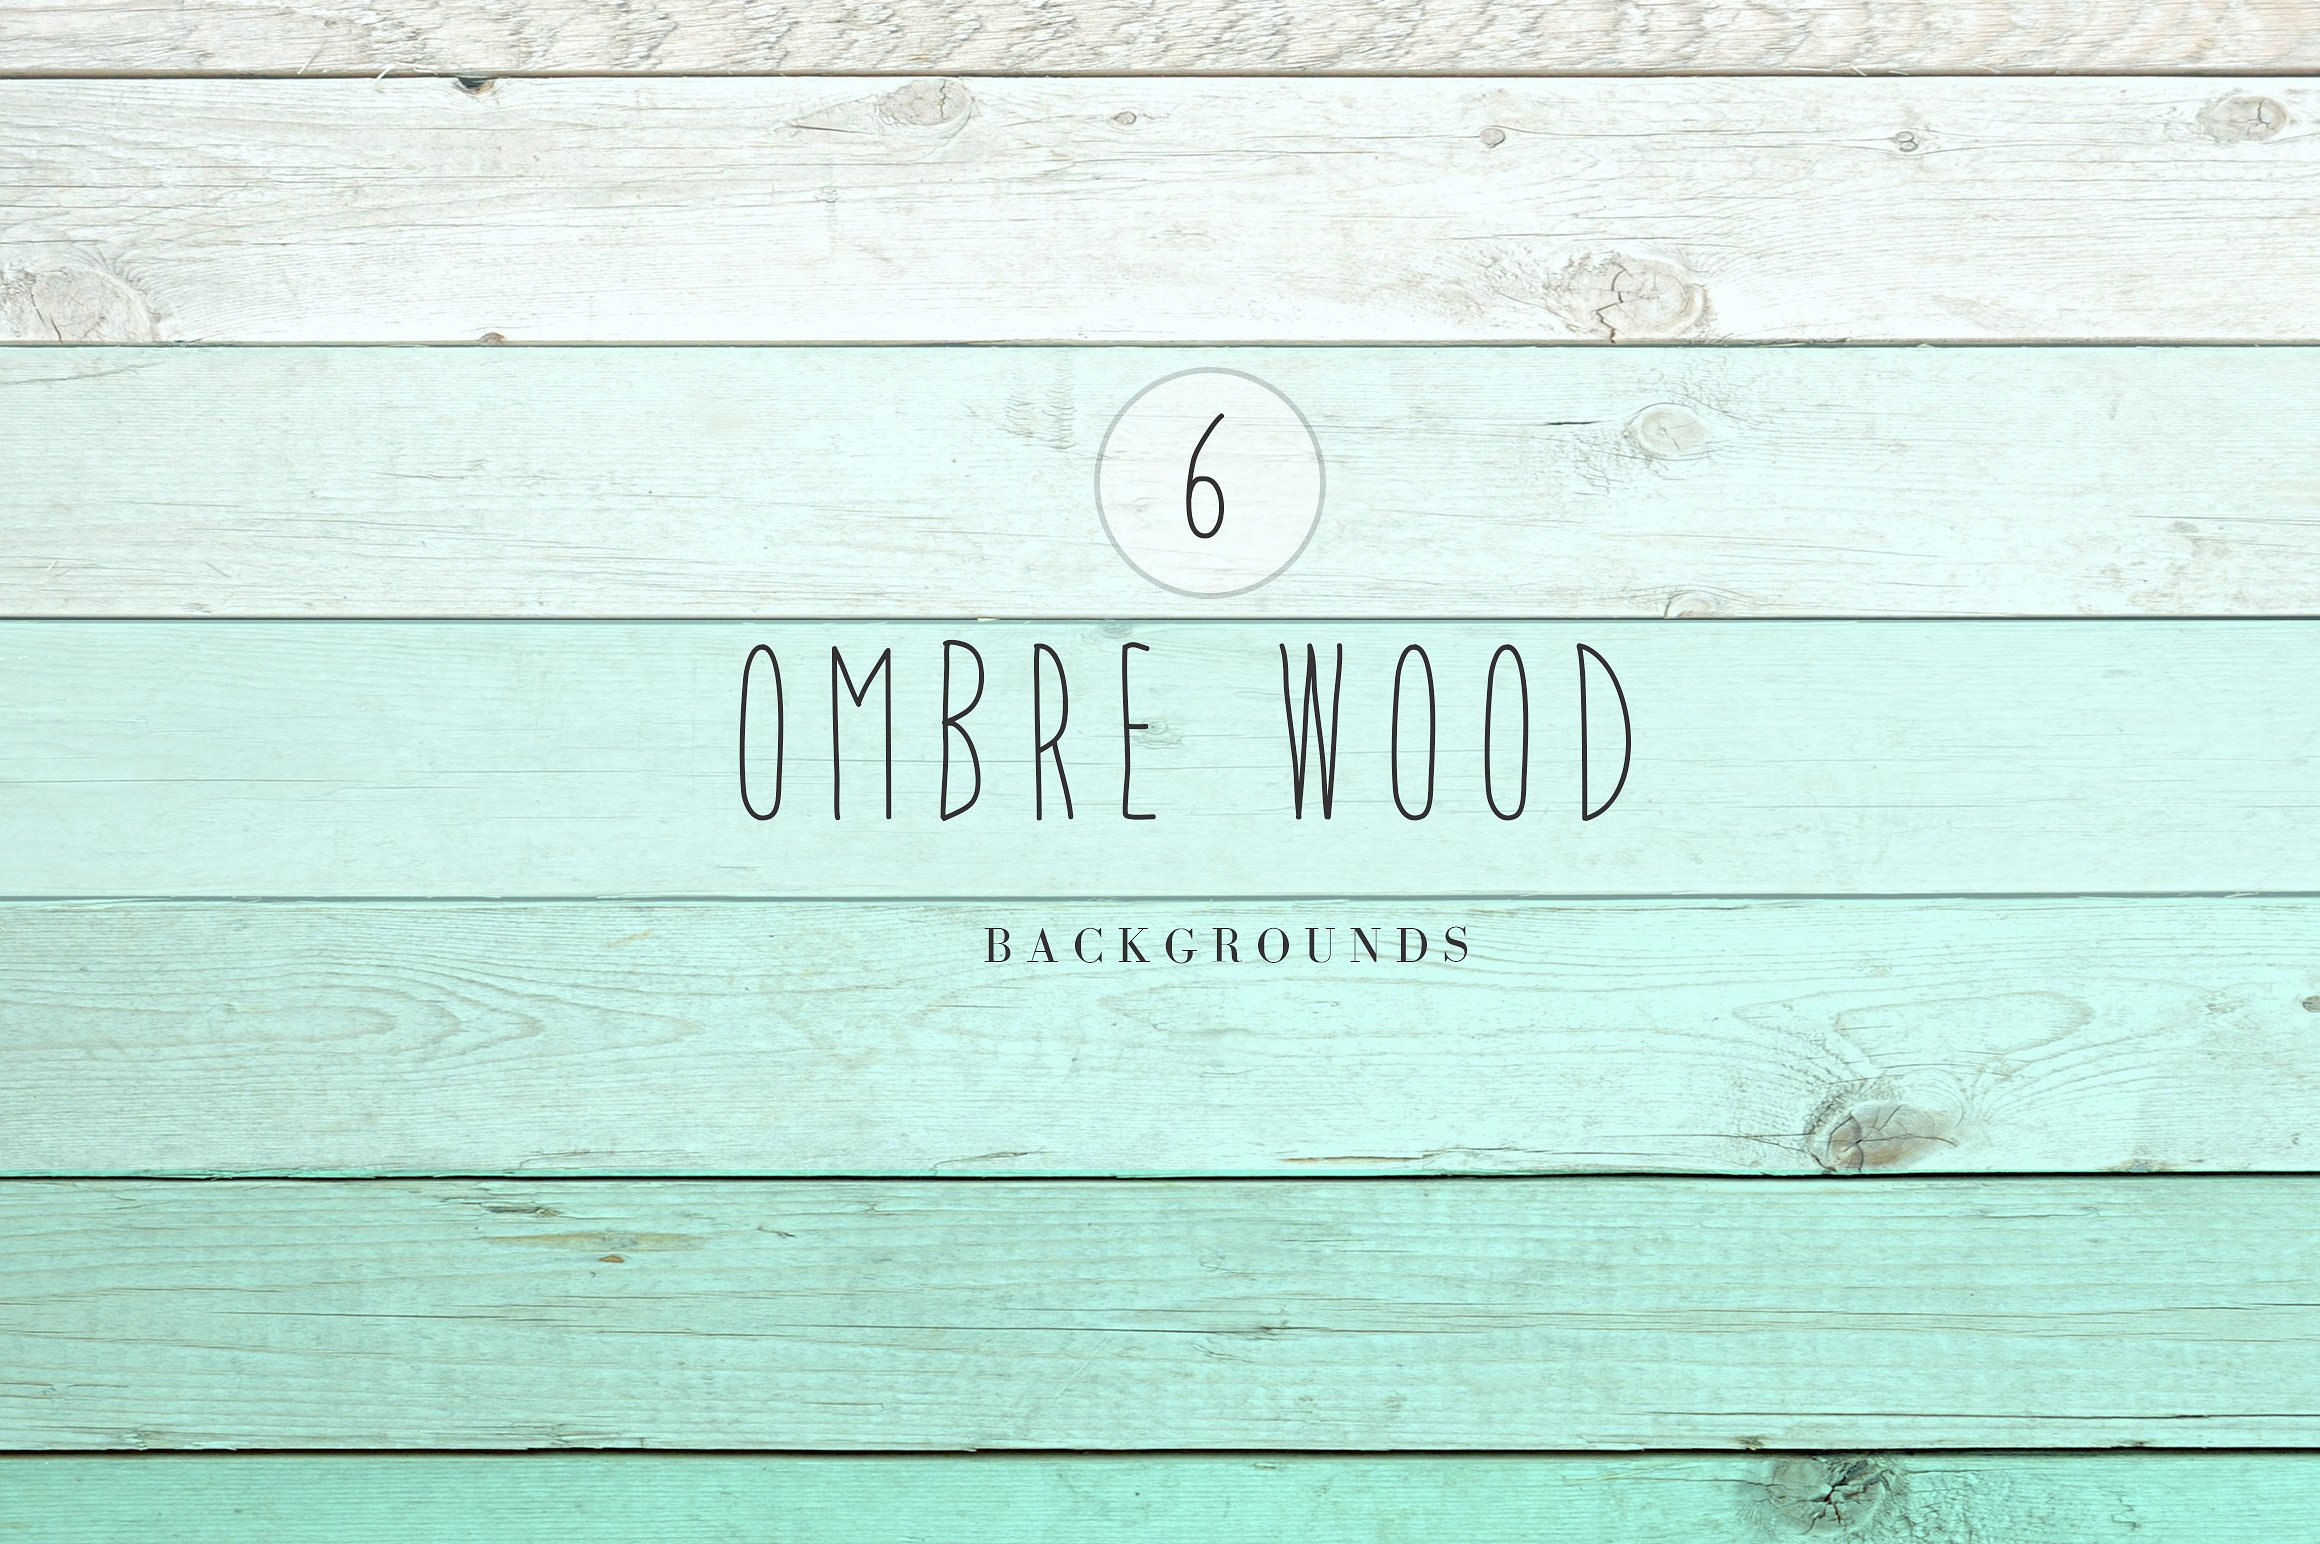 Ombre wood backgrounds ~ Textures ~ Creative Market